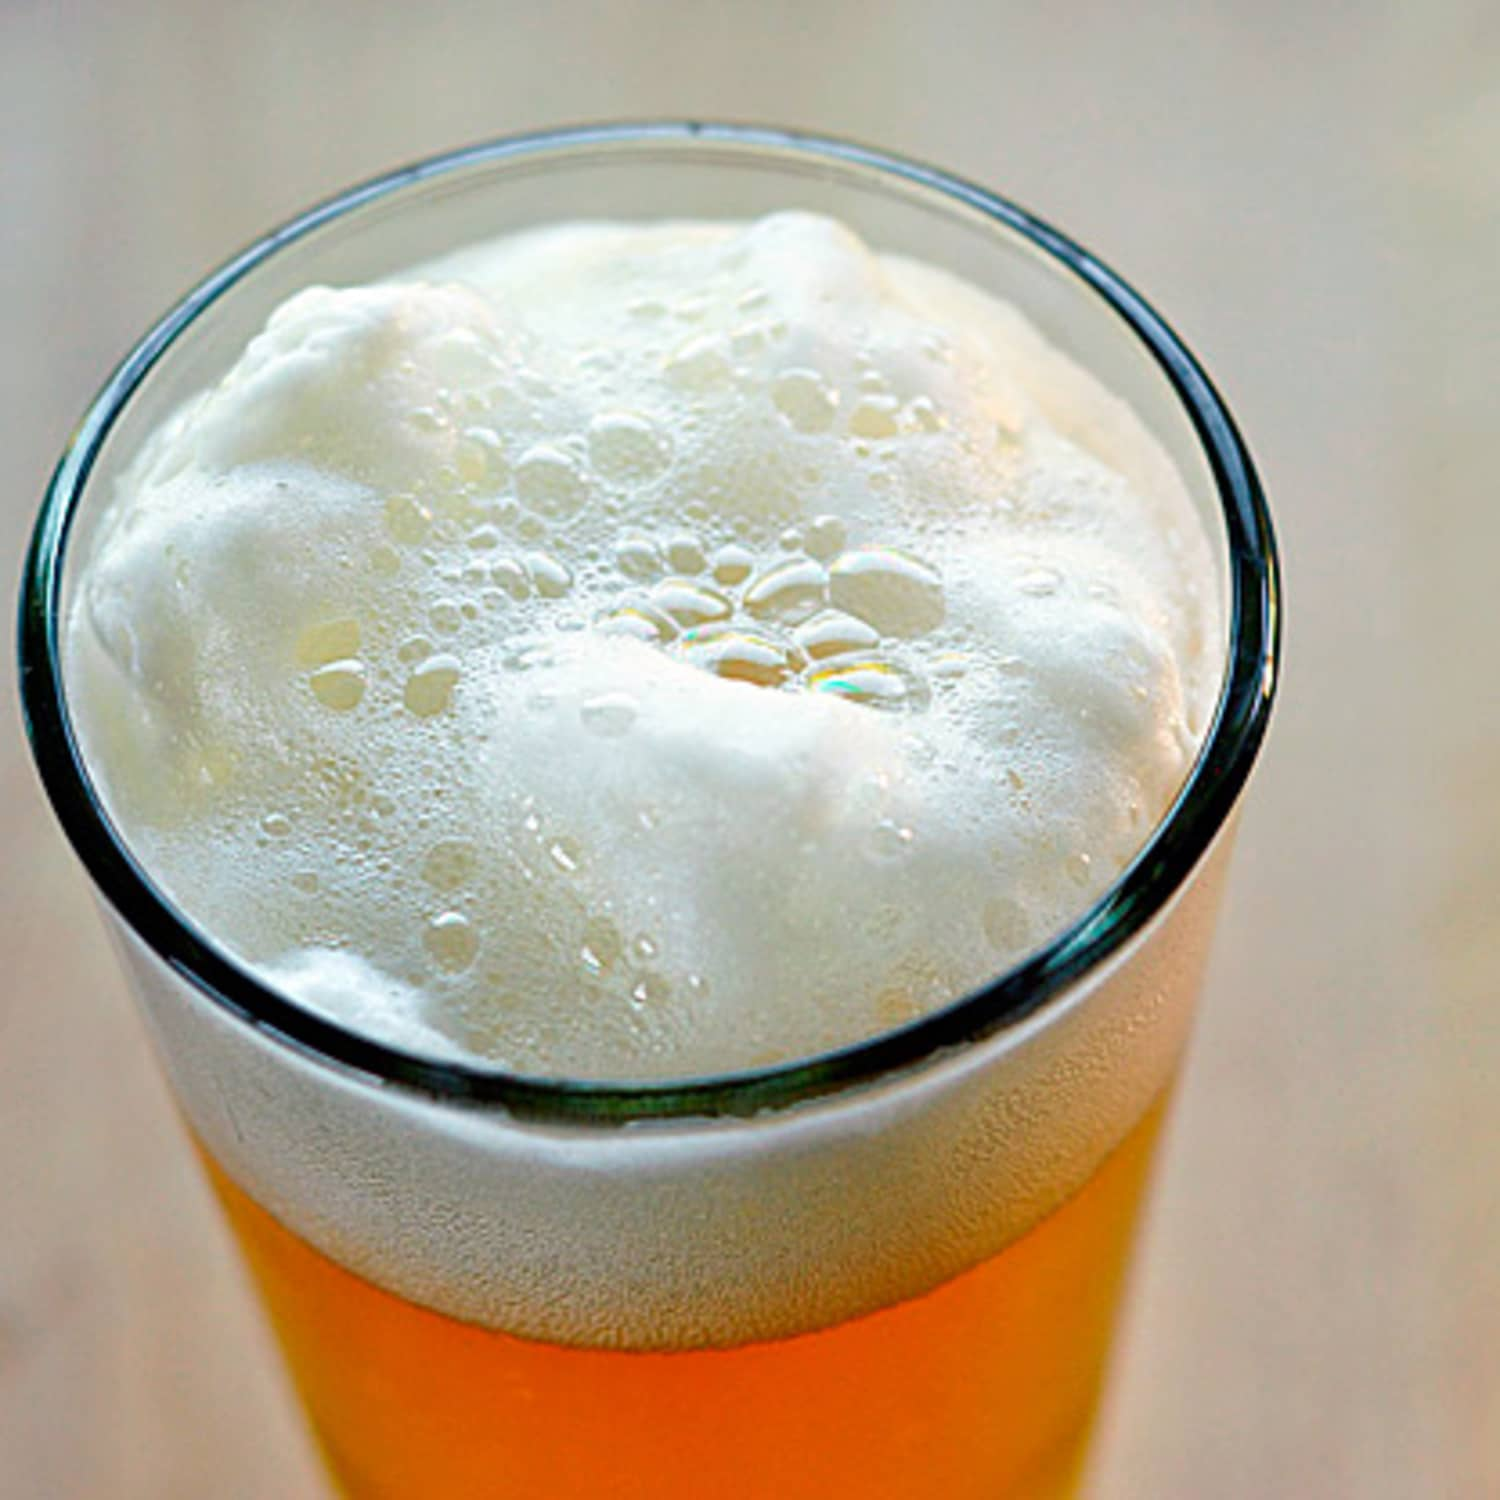 Why You Should Drink Beer from a Glass | Kitchn